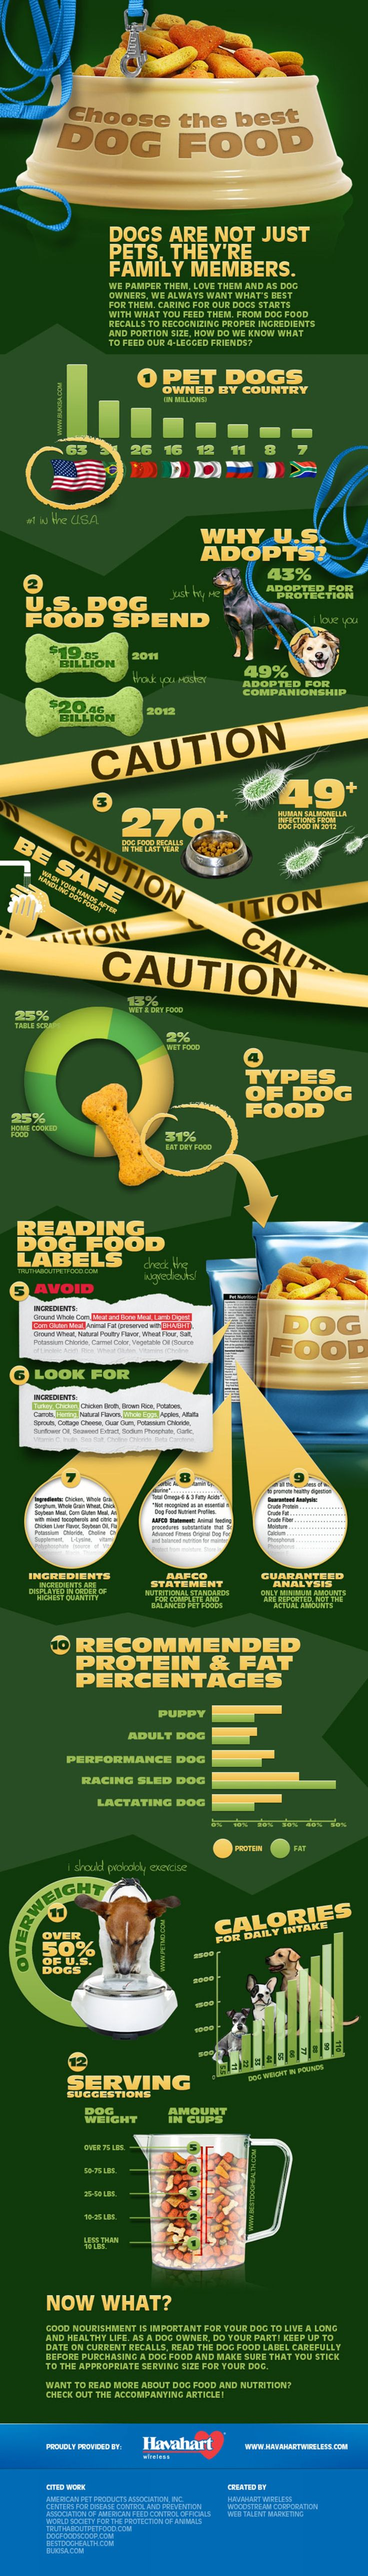 Choose the Best Dog Food Infographic